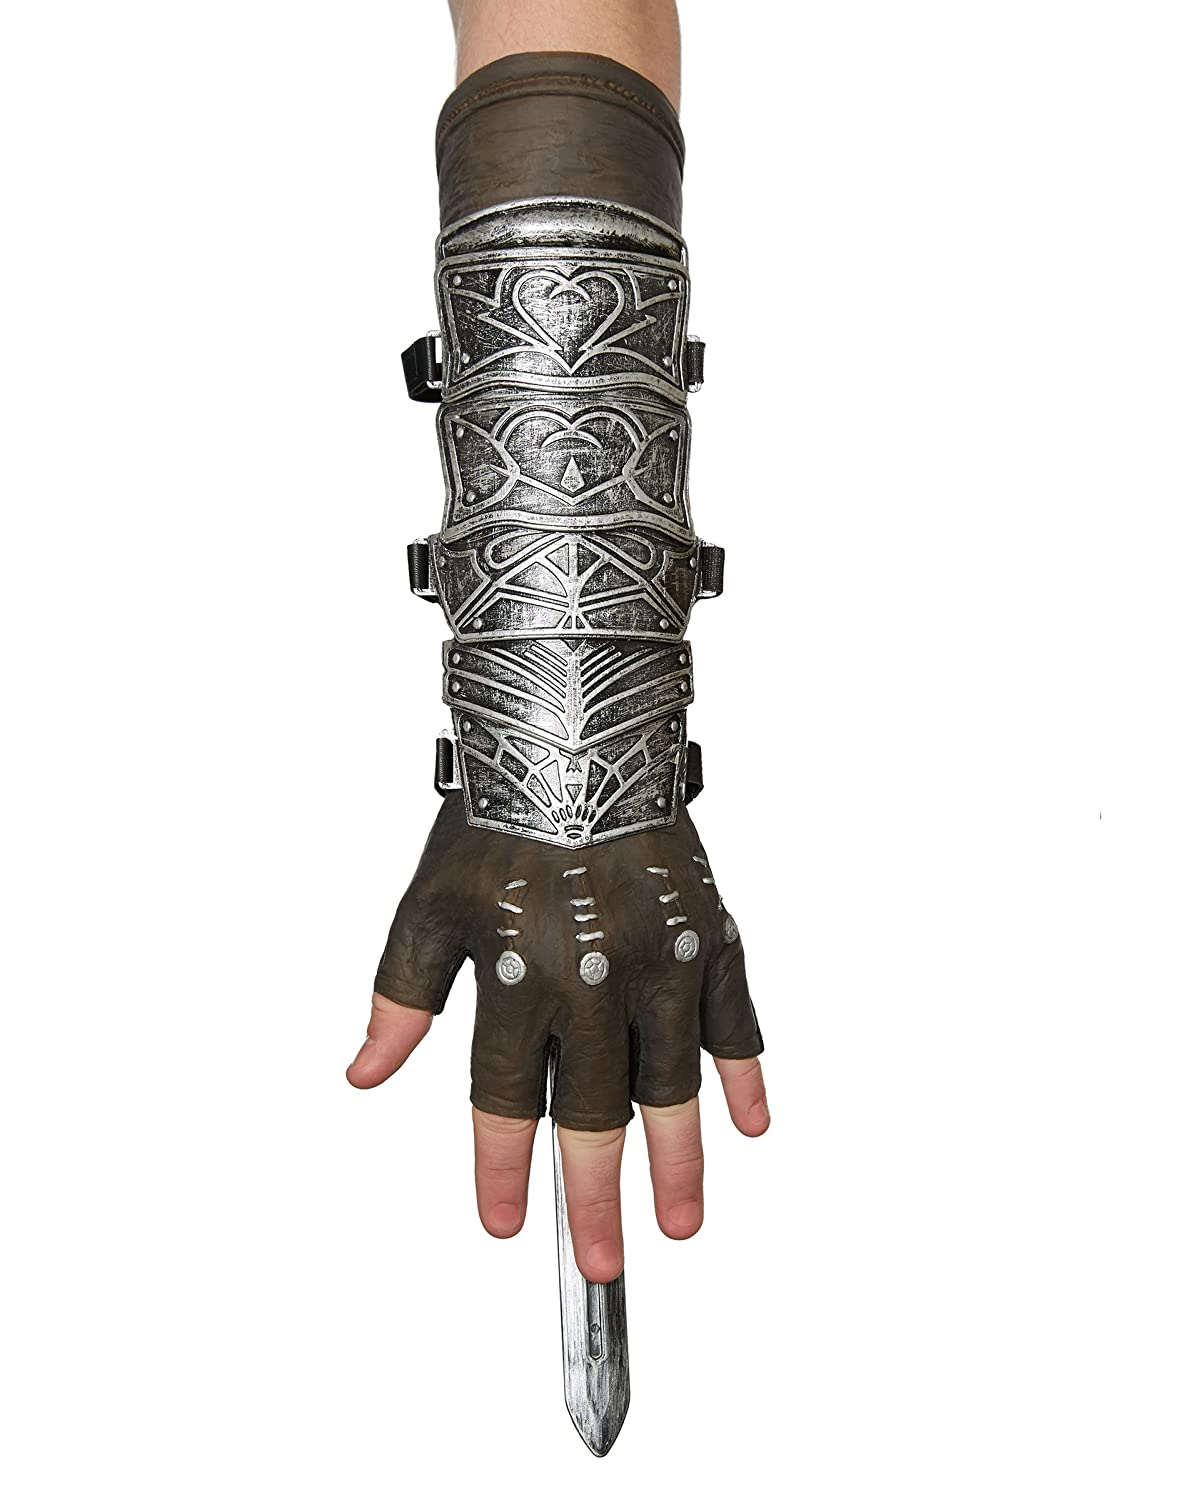 Spirit Halloween Kids Gauntlet Glove – Assassin's Creed 01367945